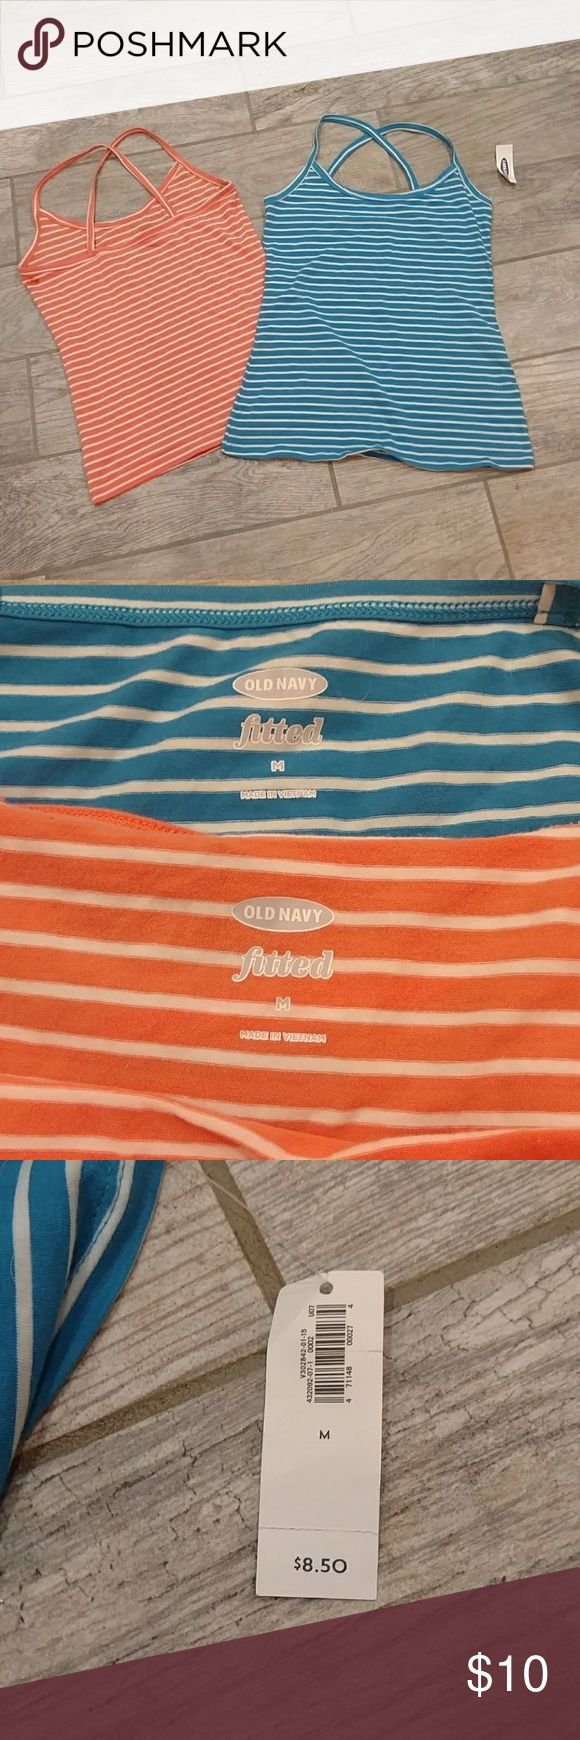 Two Striped Camis Orange and white striped and blue and white striped camis. Old navy. Orange one worn once.  Blue one never worn, tag still on. Criss cross straps. Downsizing and need to sell. REASONABLE offers considered. Thanks for looking!! Old Navy Tops